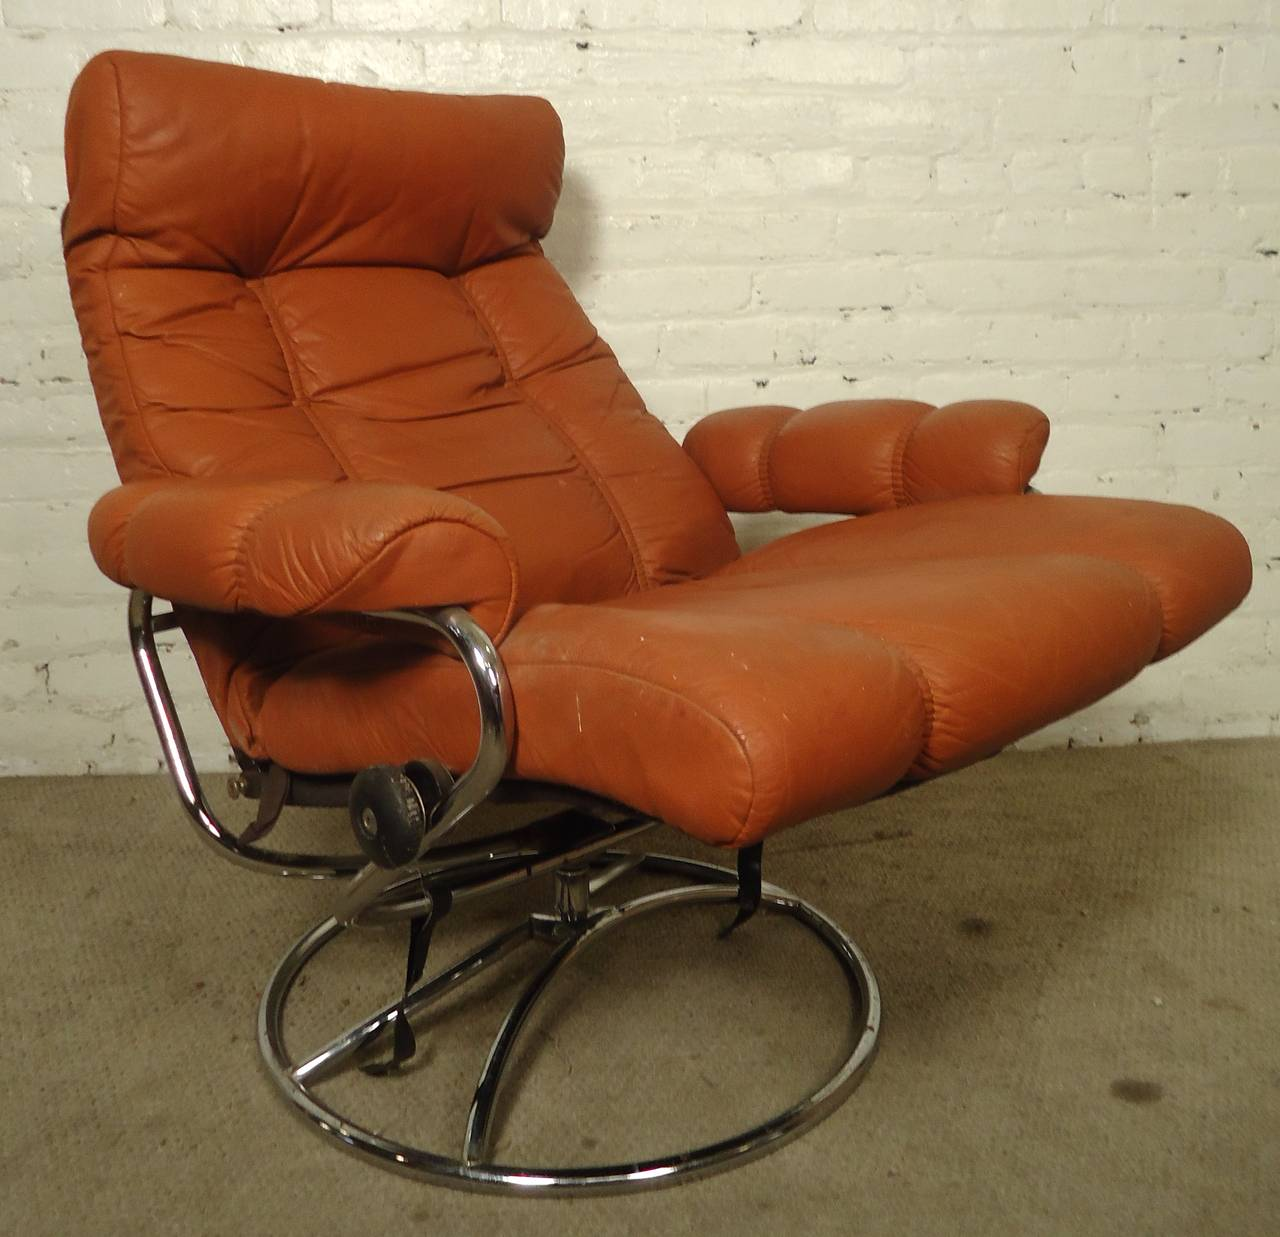 Leather Chairs And Ottomans Sale Mid Century Reclining Chair And Ottoman By Ekornes Stressless